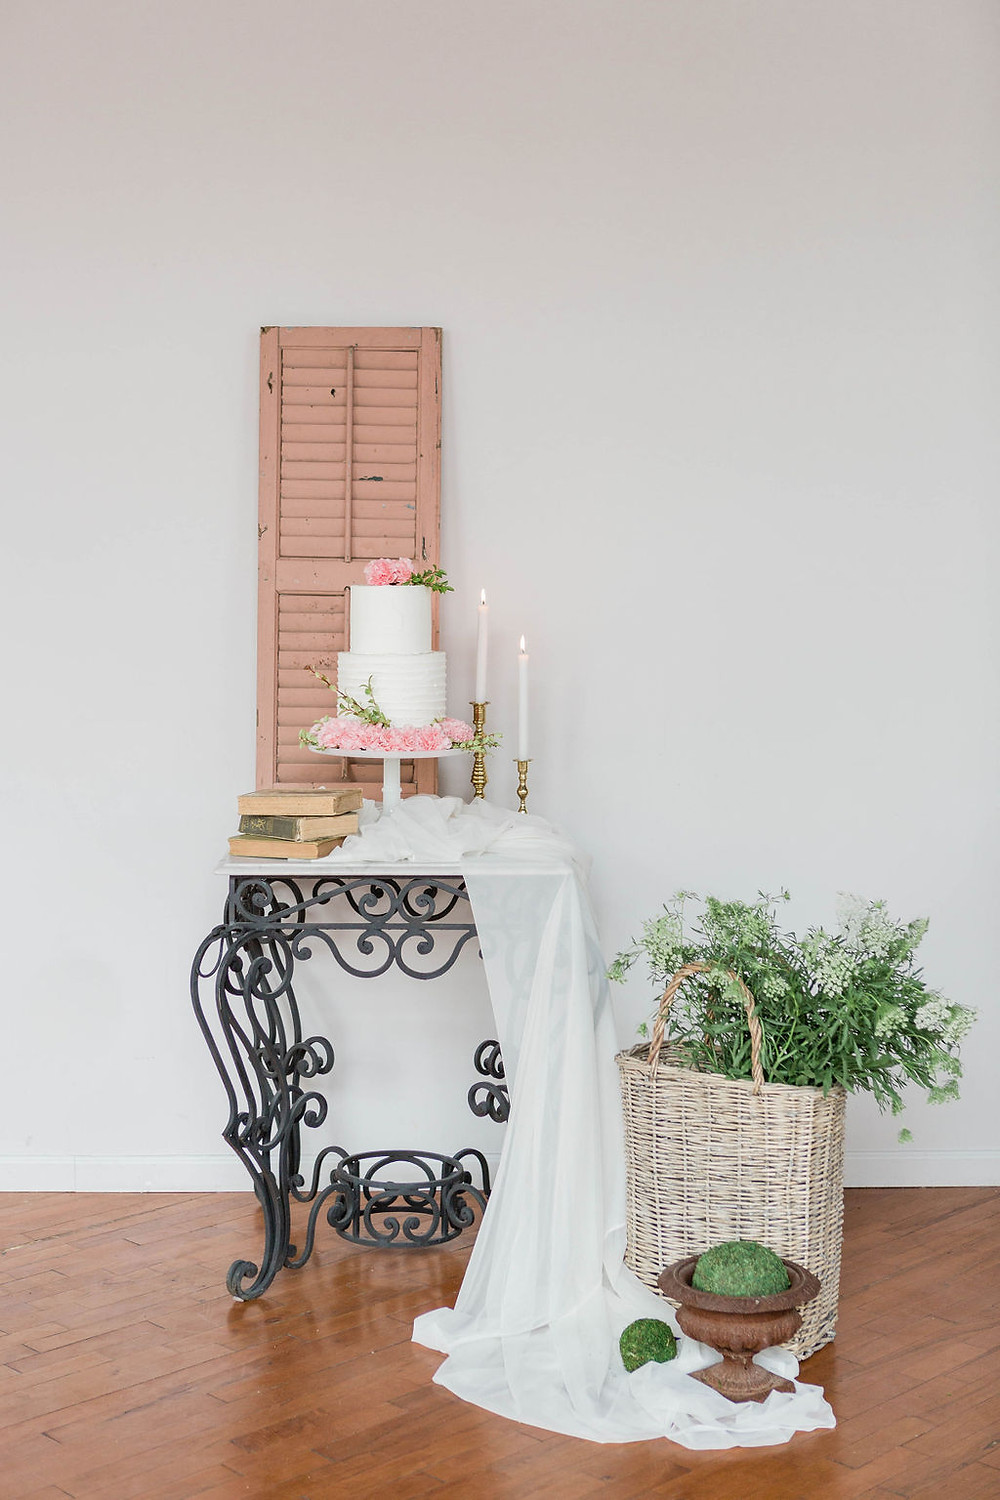 Simple cake table using vintage pastry table